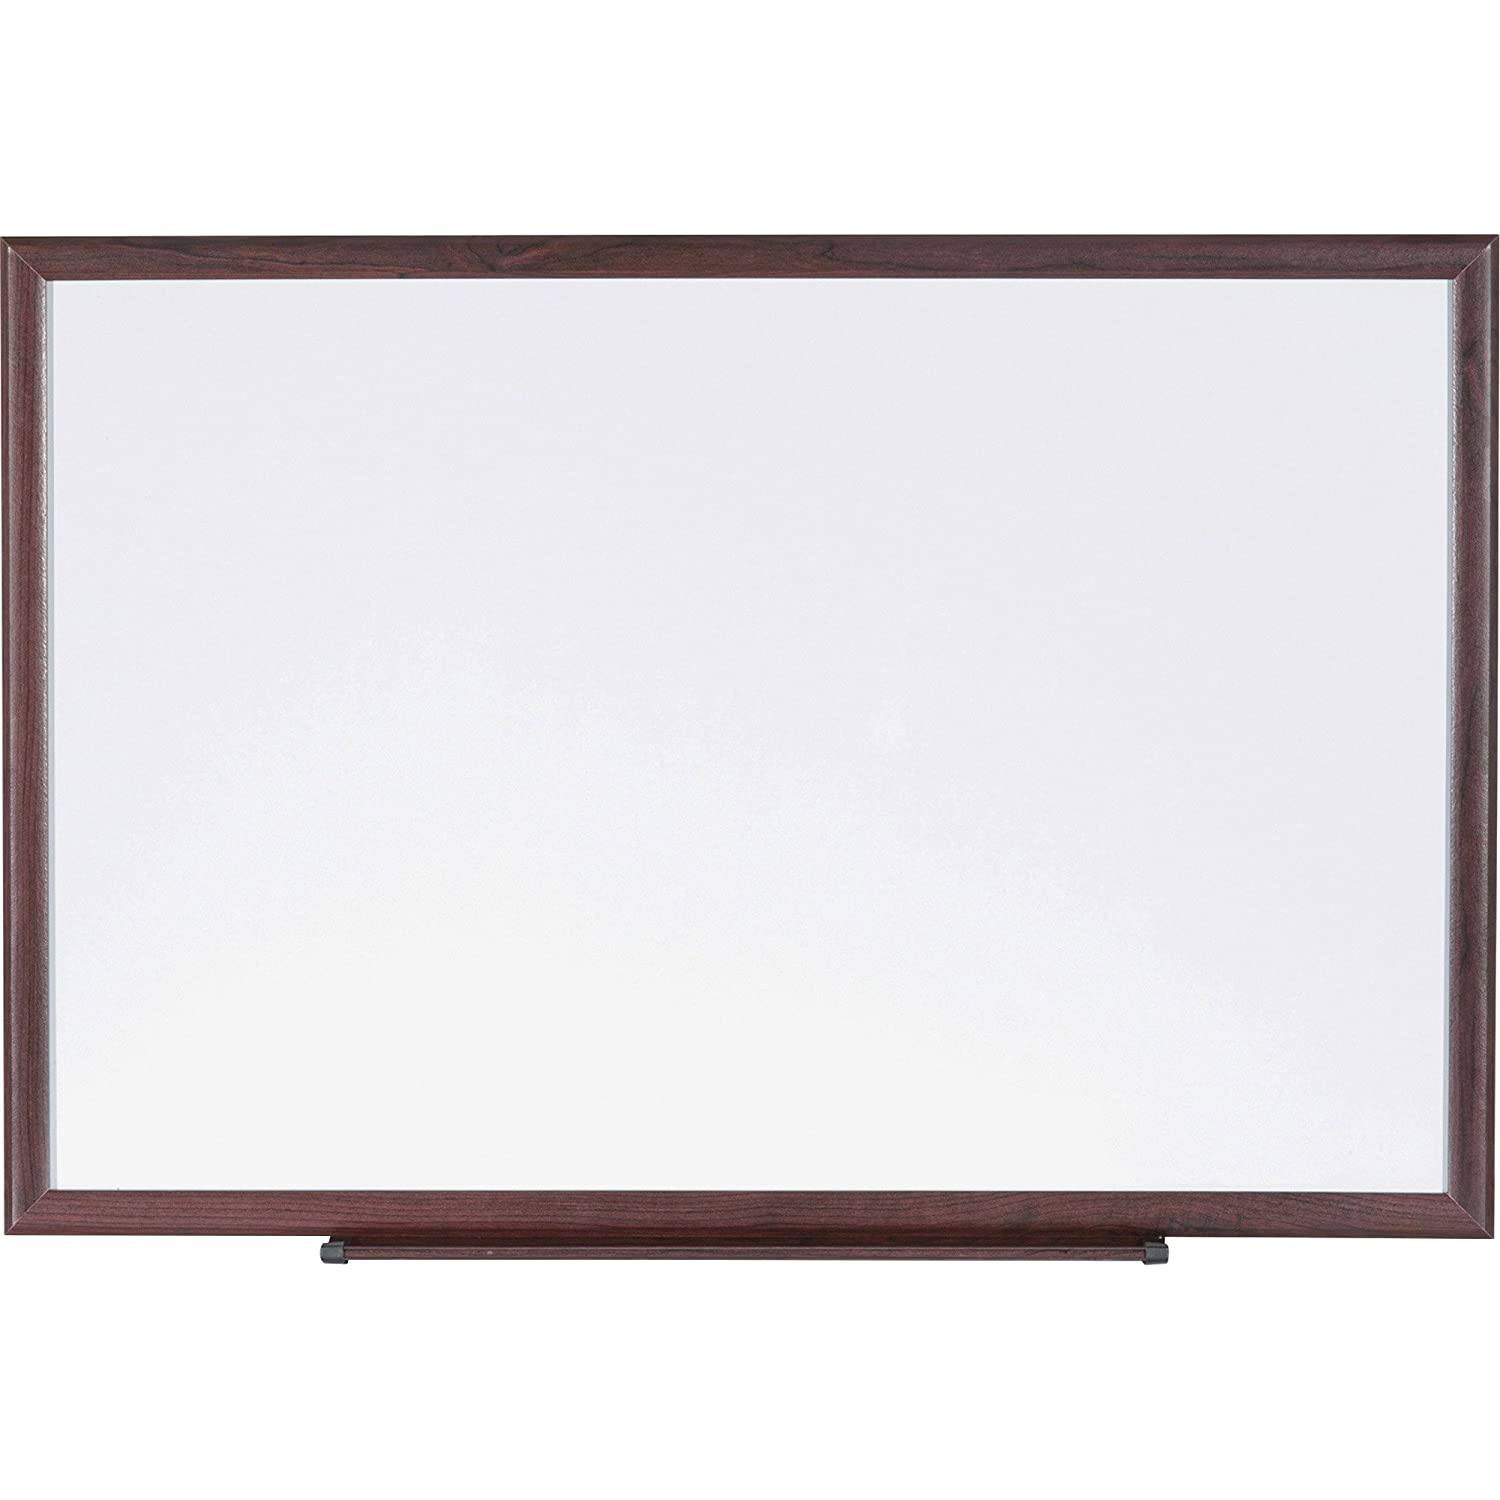 Lorell 84169 Dry-Erase Board, Wood Frame, 6'x4', Brown/White 6' x4'